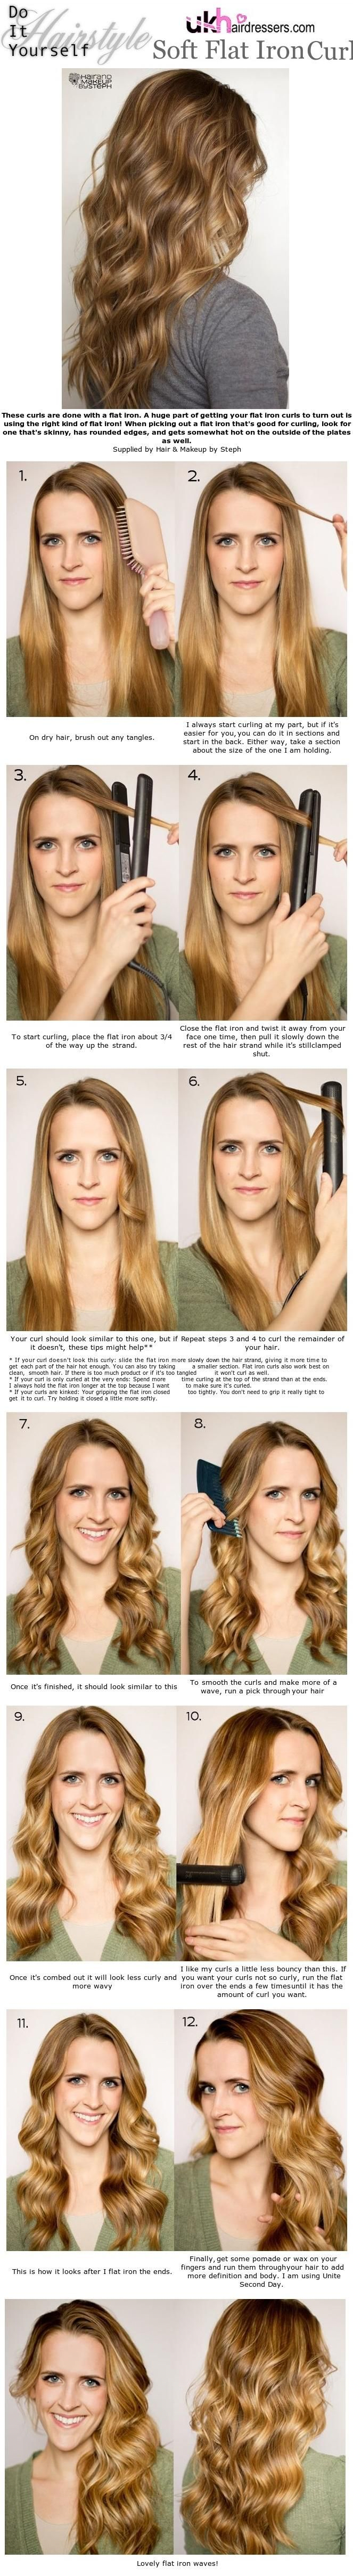 DIY Styles - Soft Flat Iron Curls visit www.ukhairdressers.com for #hairstyles and #hair inspiration